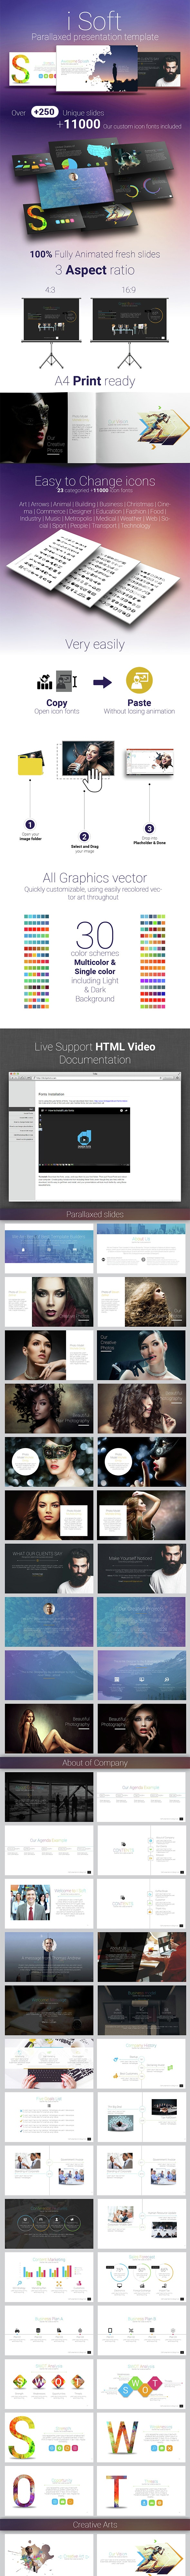 I Soft Powerpoint Presentation Template - Business PowerPoint Templates